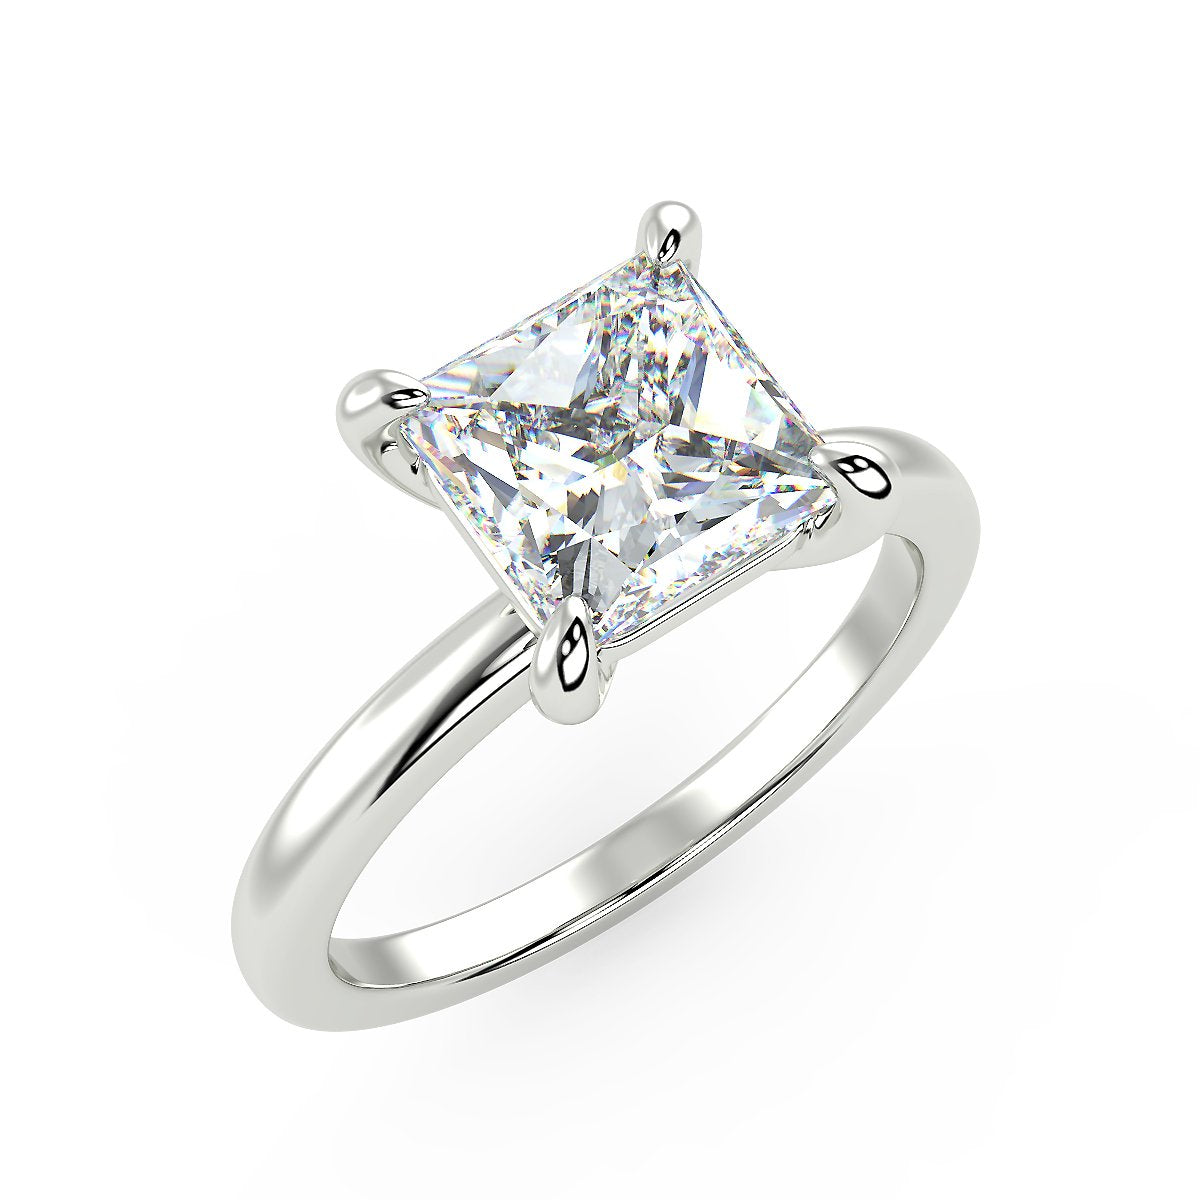 Sirius Princess Engagement Ring in White Gold